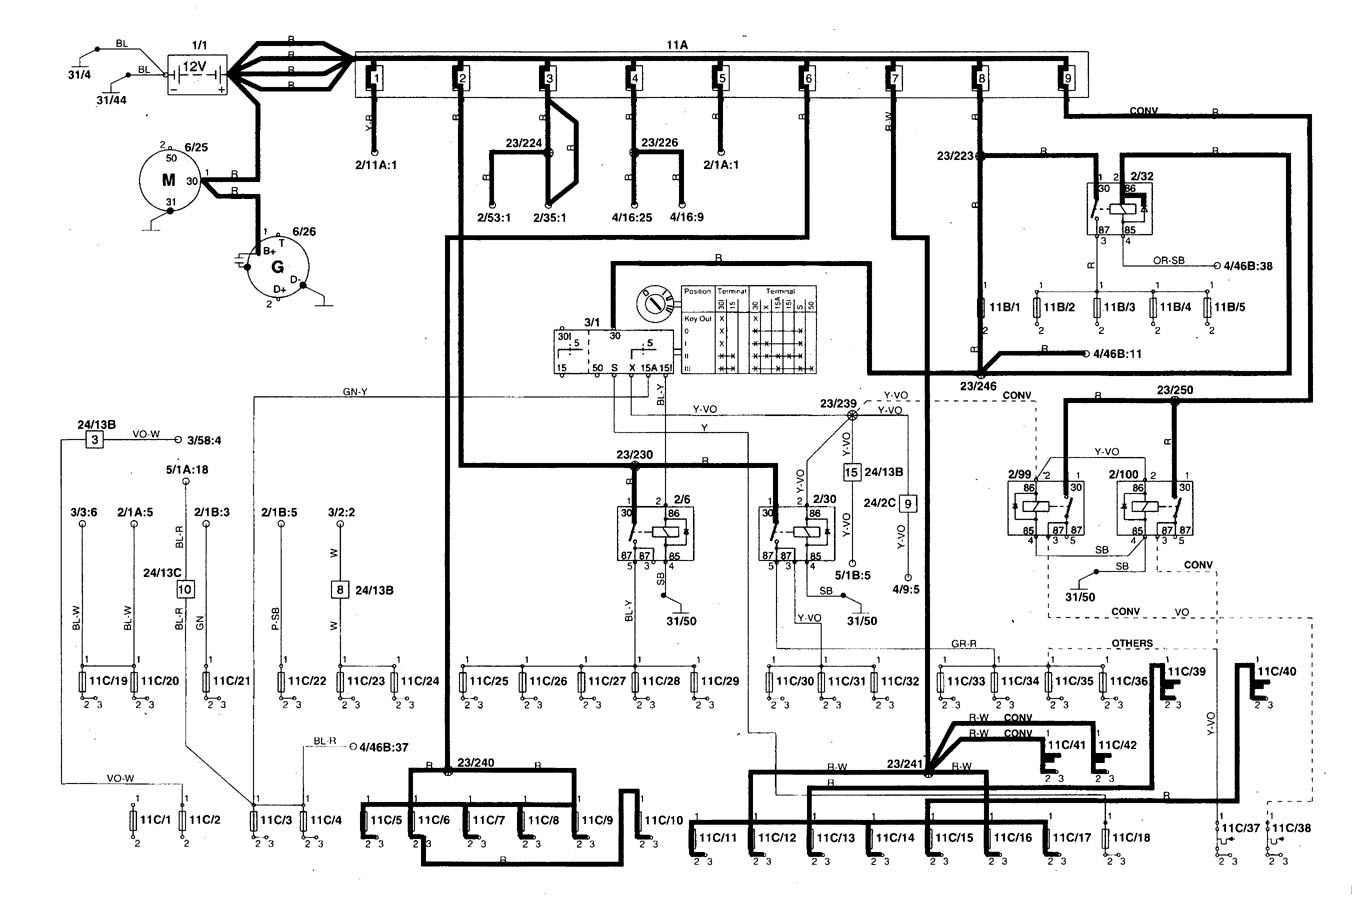 C70 Wiring Diagram Ranger Wiring Diagram • 138dhw.co